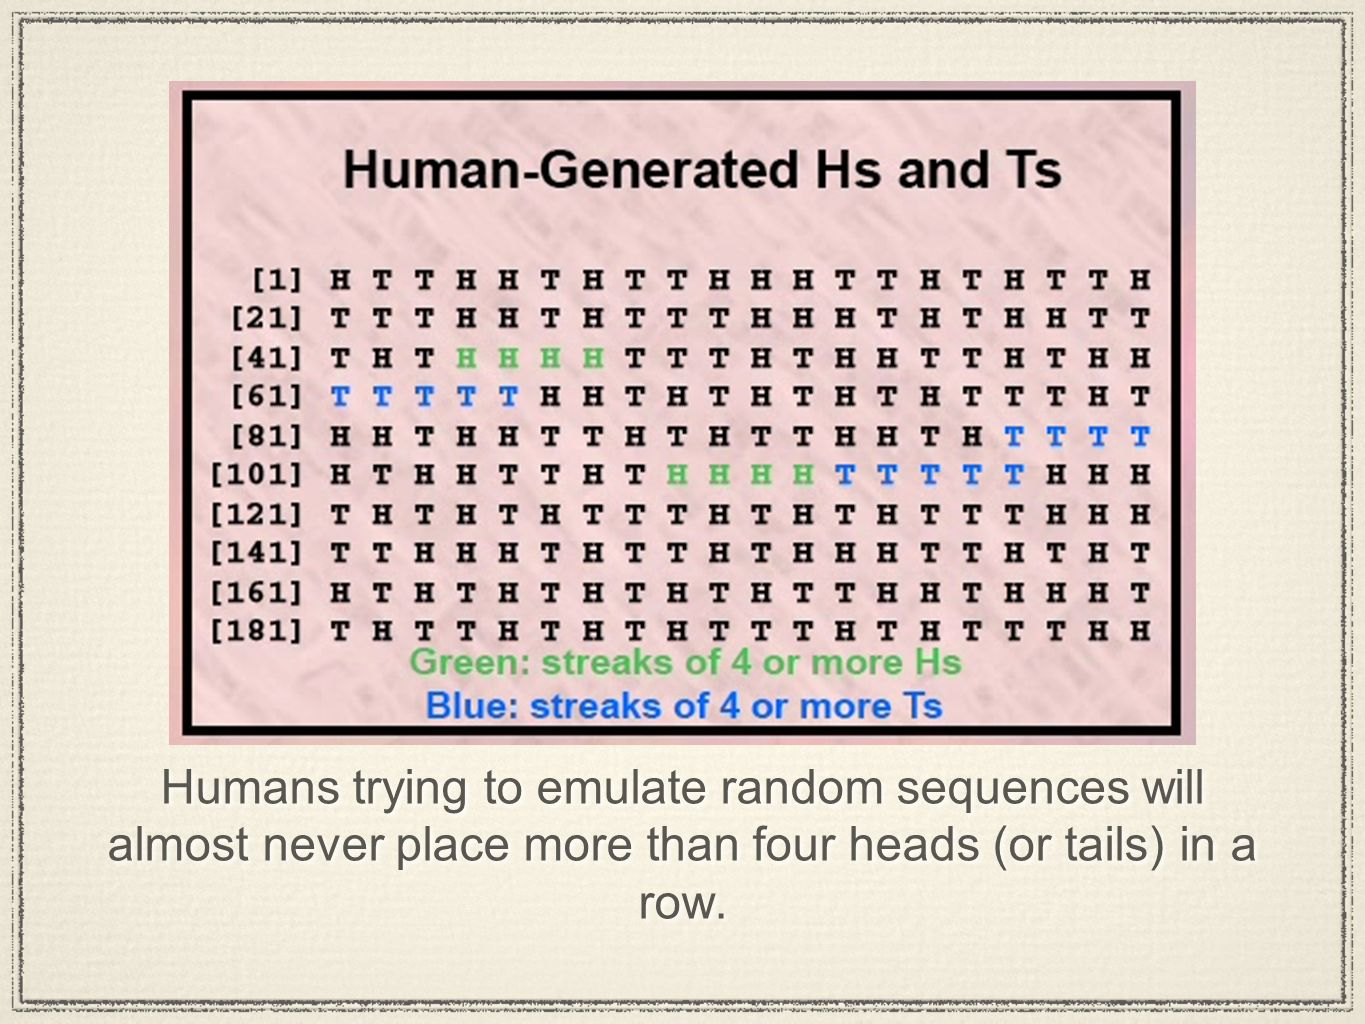 Humans trying to emulate random sequences will almost never place more than four heads (or tails) in a row.